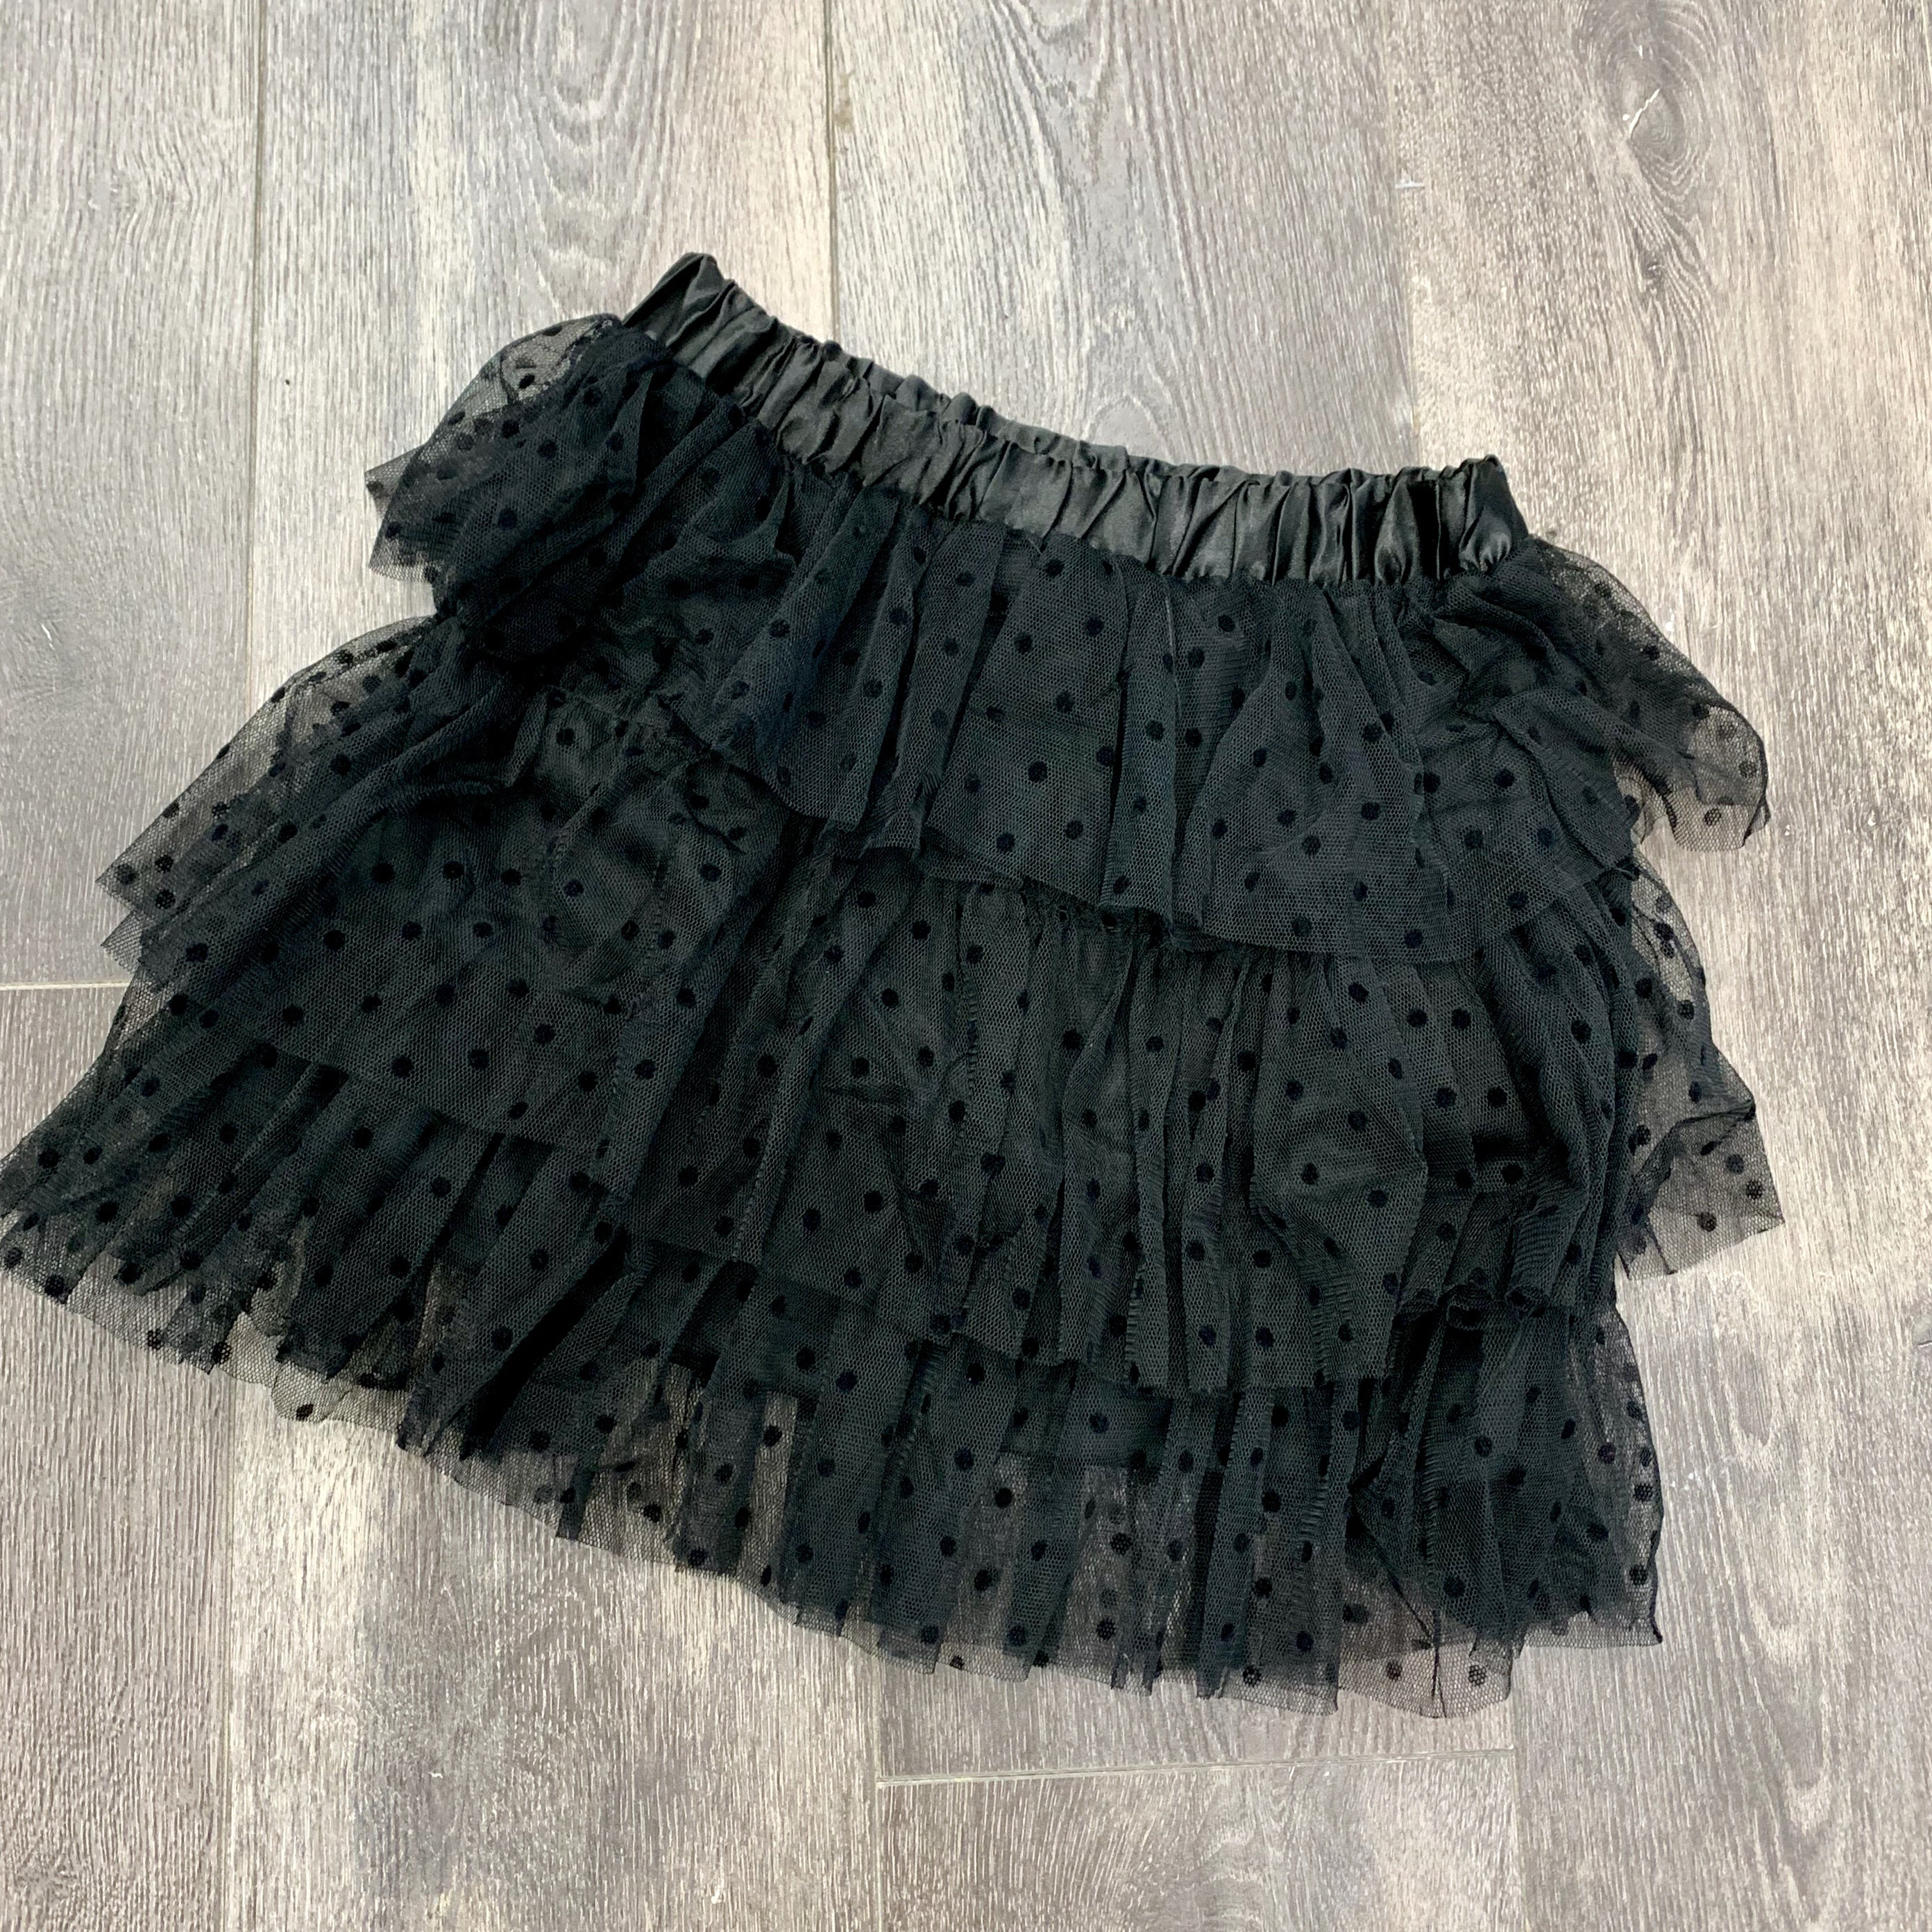 Black Loli Skirt